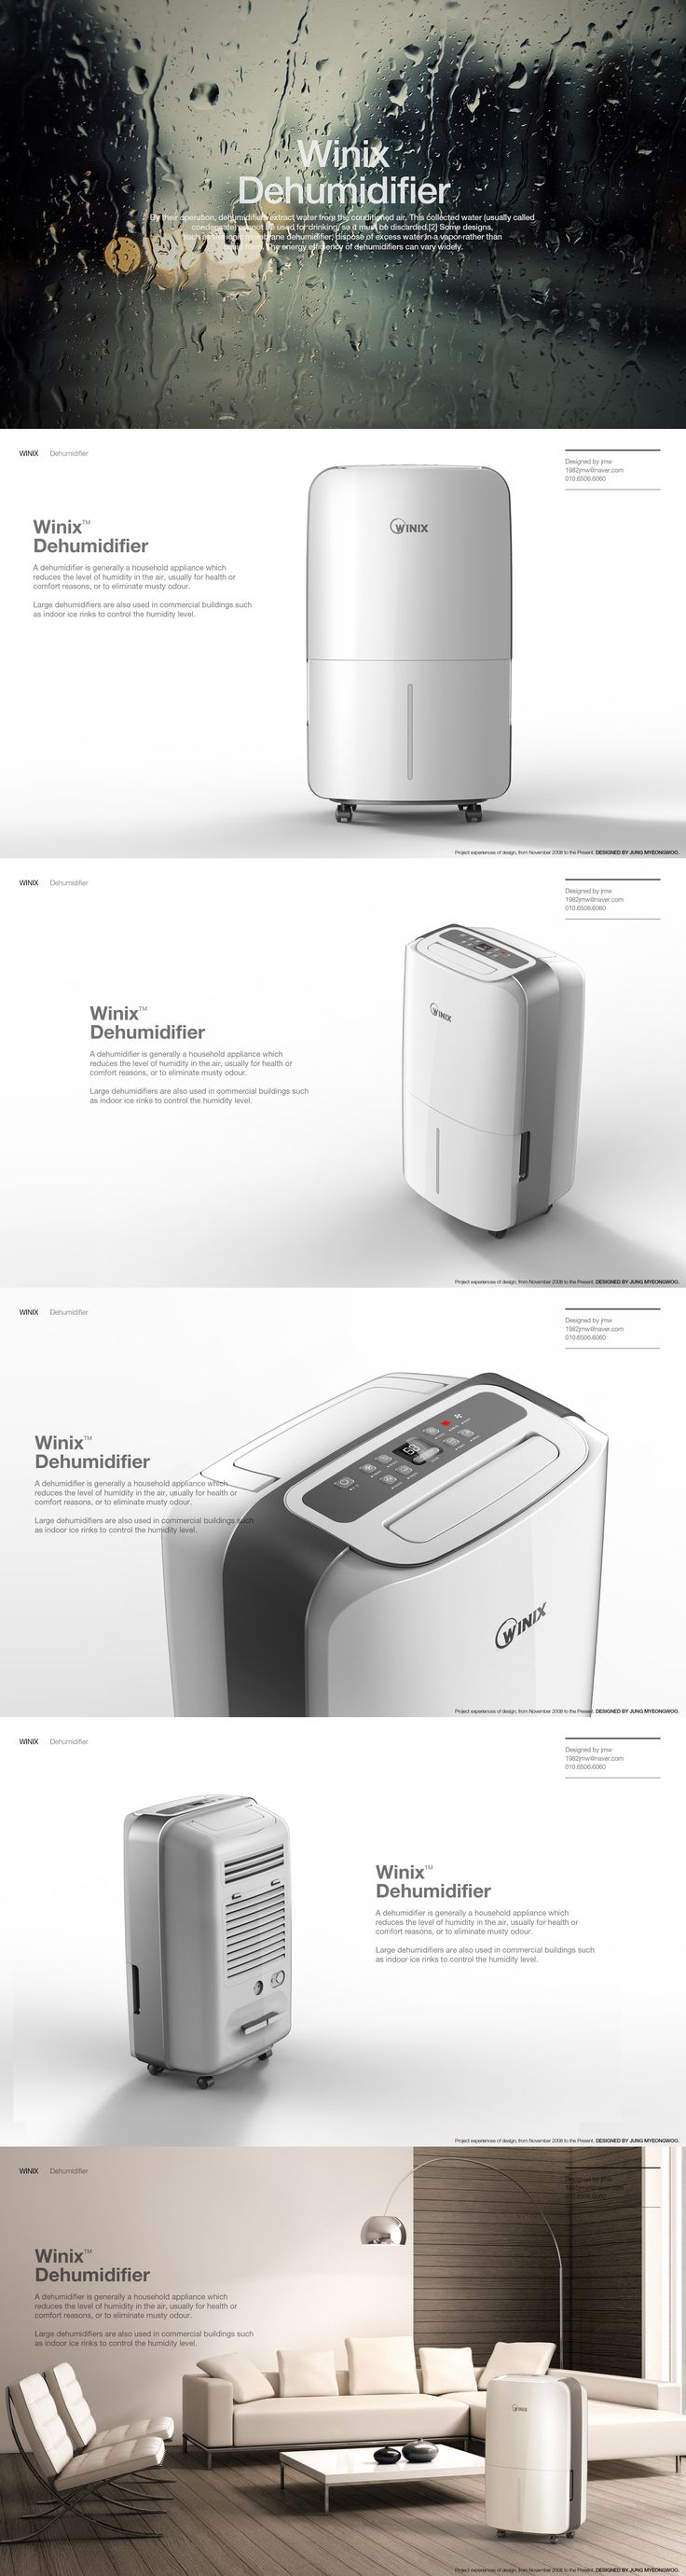 myeongwoo jung on Behance